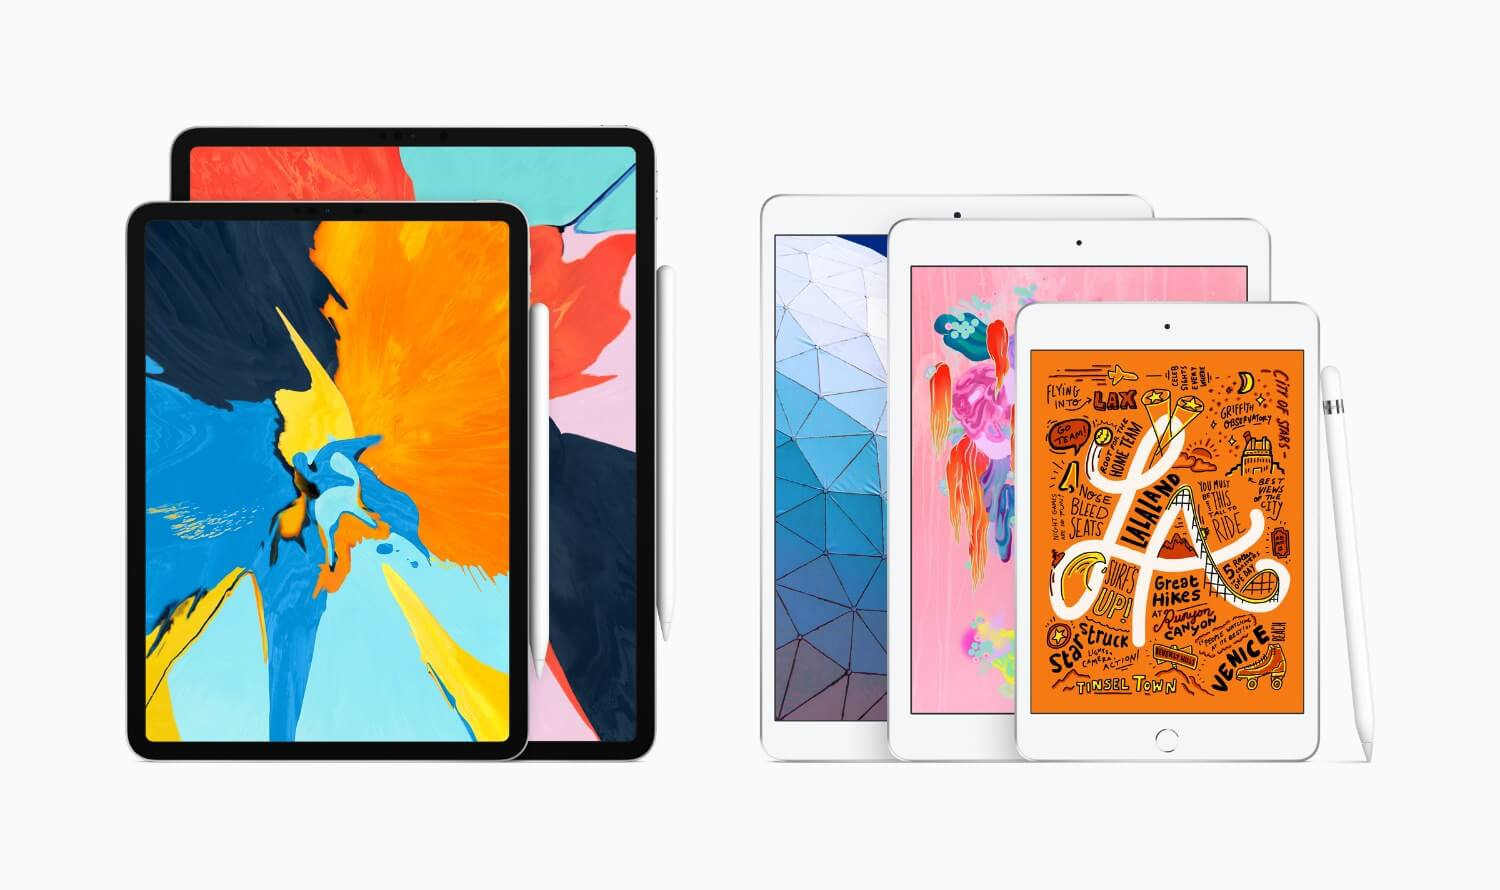 IPad Air 2019 replaces 2017 iPad Pro 10.5, not $329 iPad